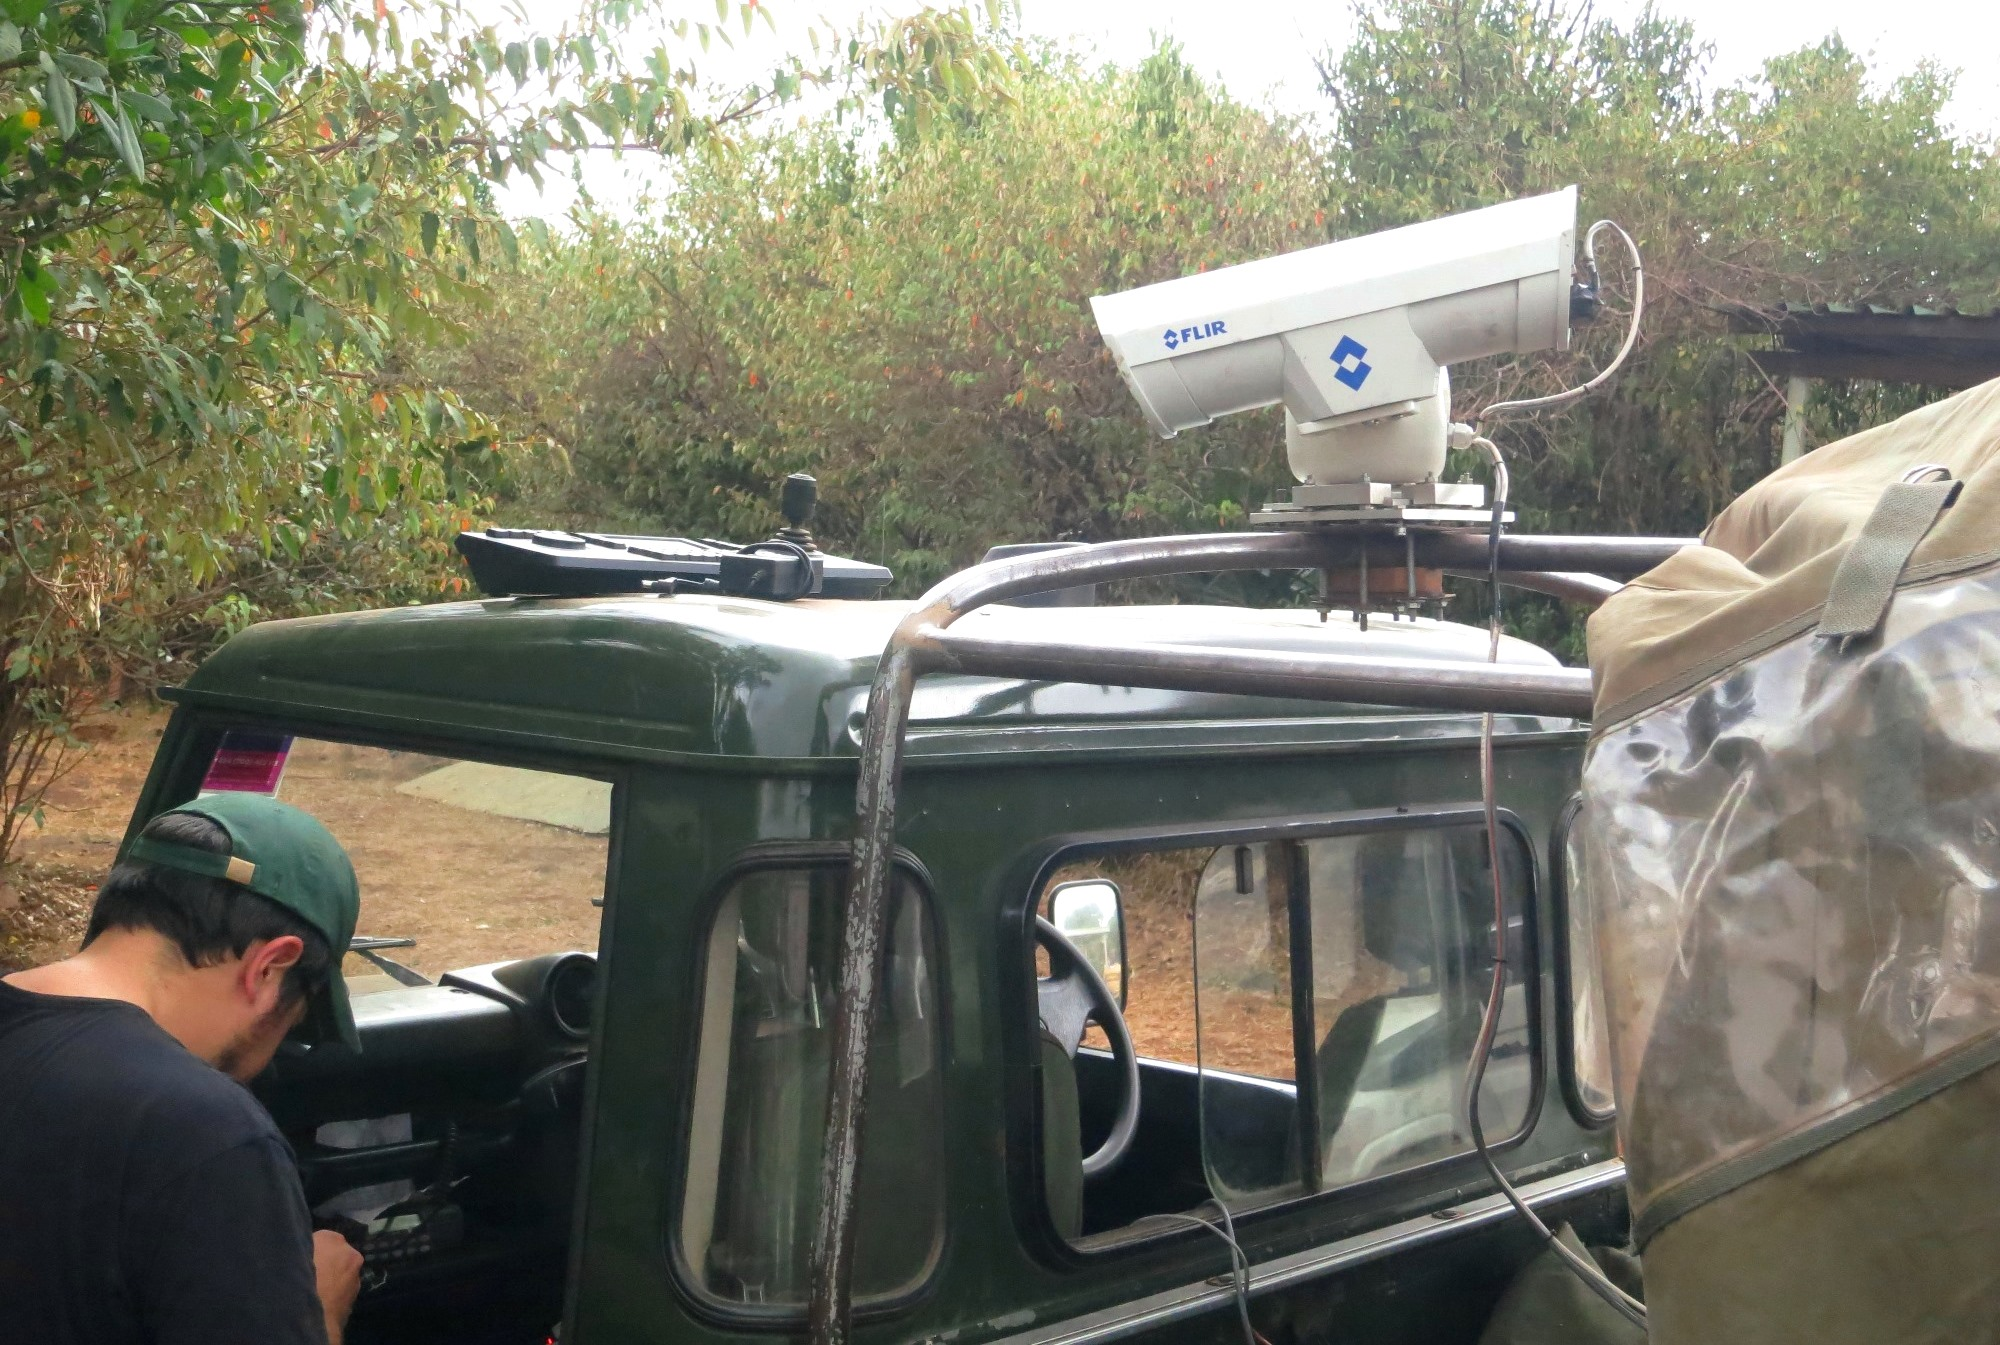 The FLIR thermal camera mounted on a vehicle in the Mara Triangle of Maasai Mara National Reserve, Kenya. A ranger operates the camera from within the vehicle and coordinates by radio with colleagues on foot.